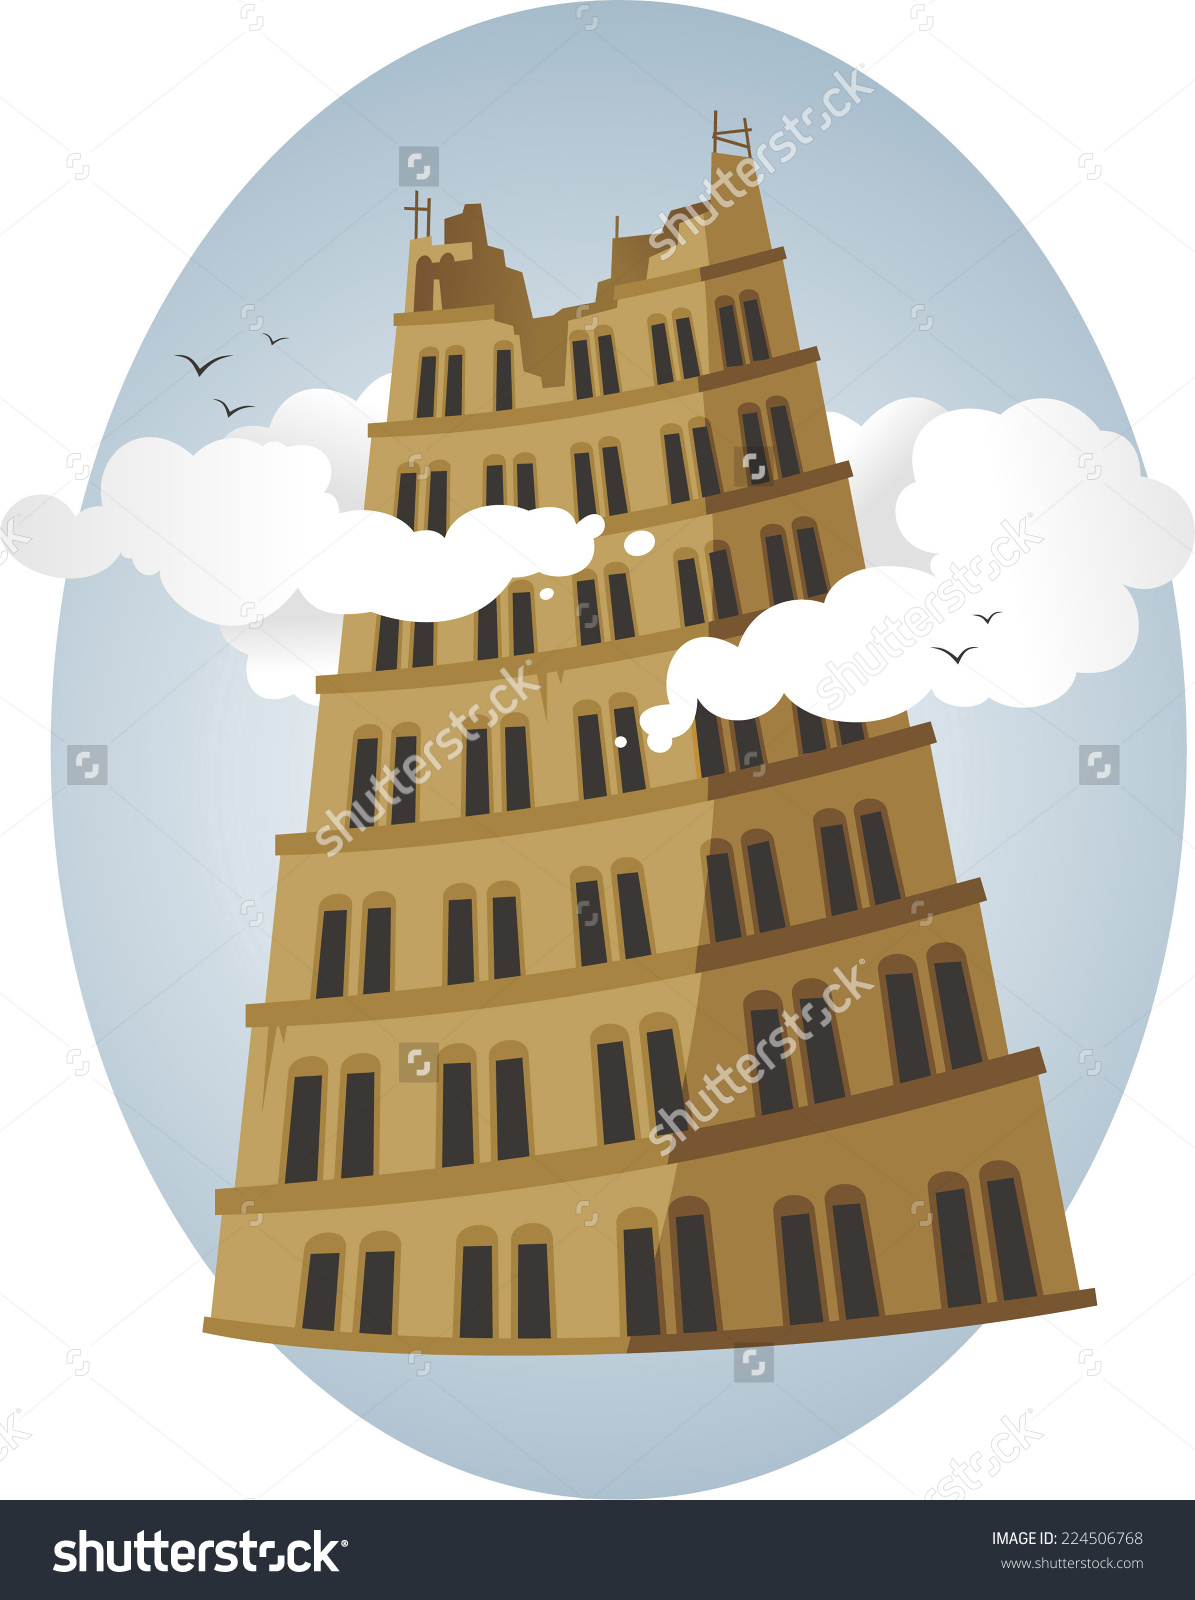 Clipart tower of babel.